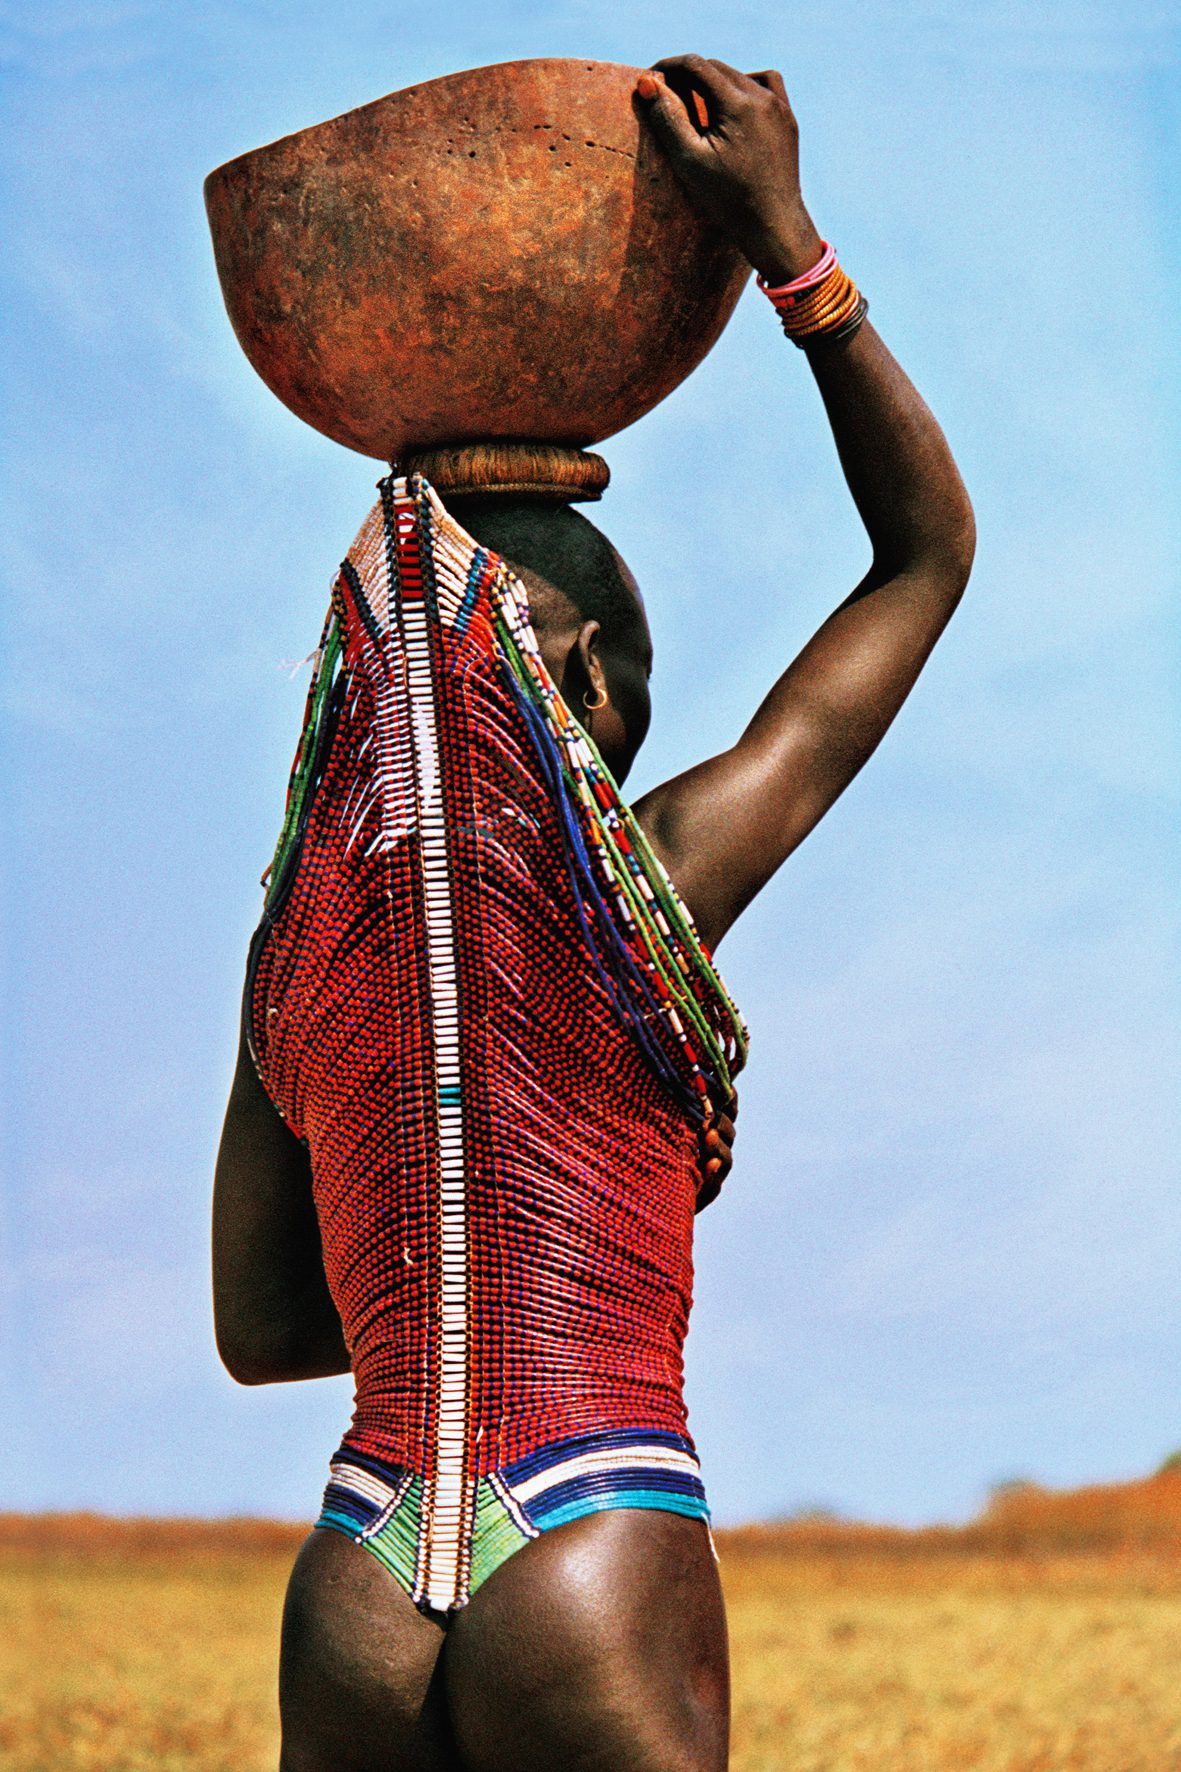 Dinka Woman Carrying Calabash, South Sudan